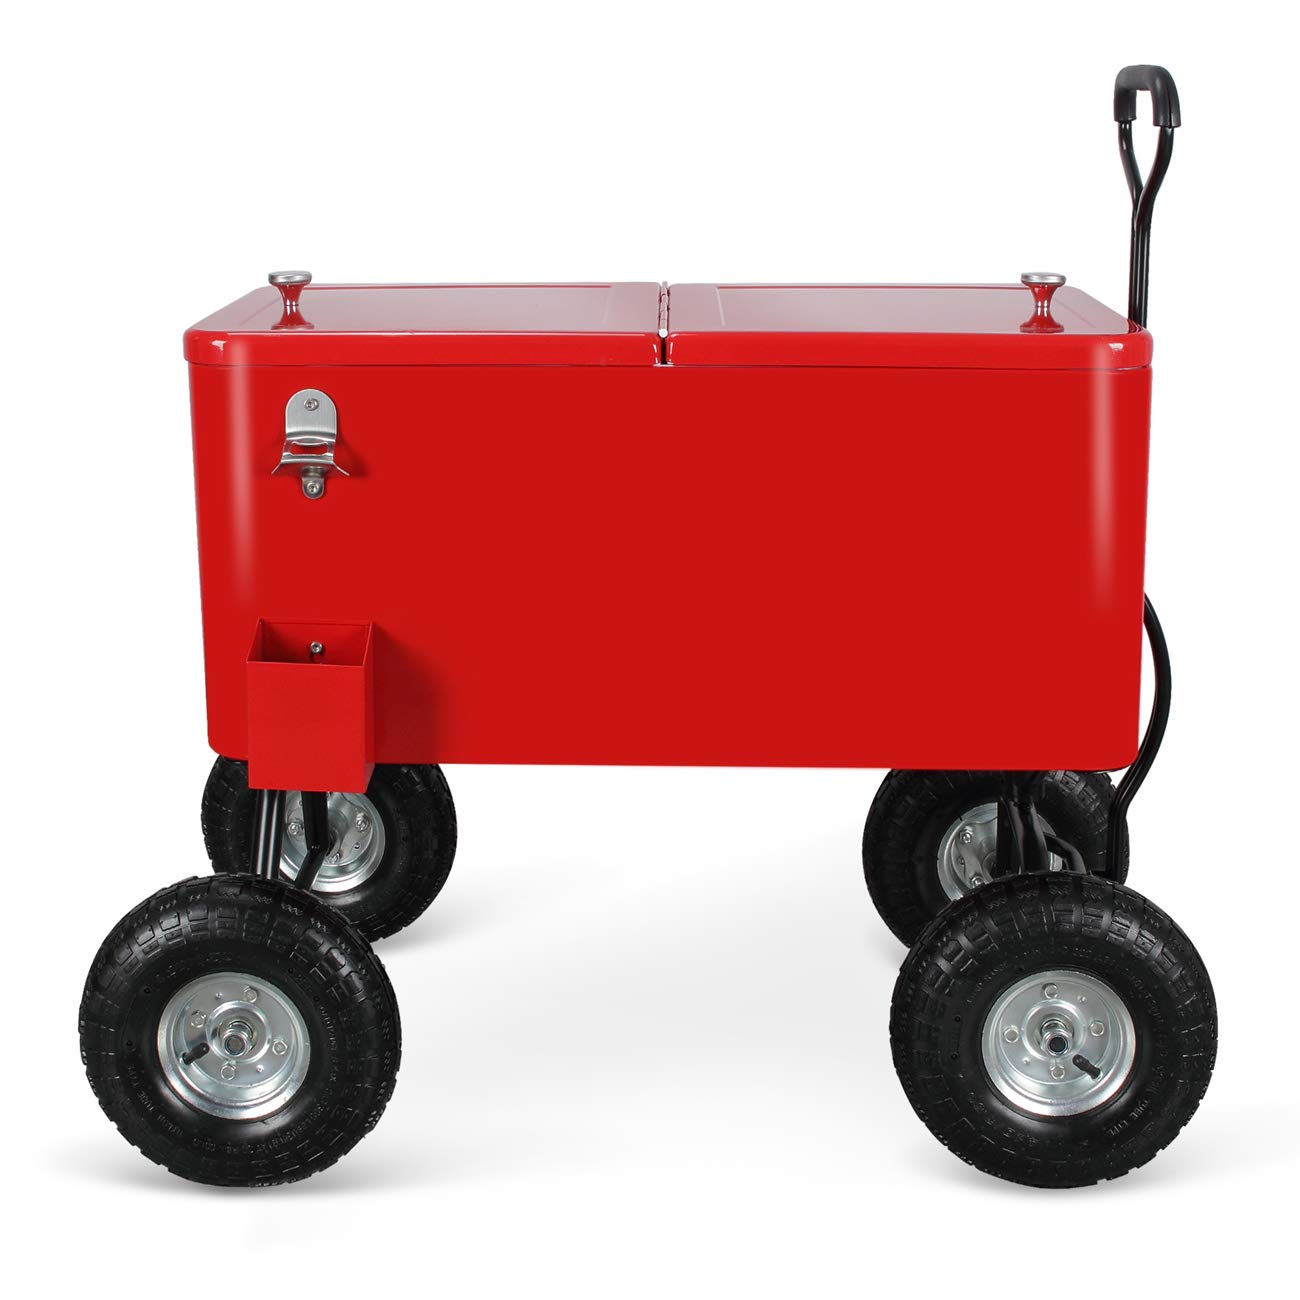 Belleze Outdoor 80 Qt Rolling Beverages Ice Chest Beach Party Patio Backyard Wagon w 10 Terrain Wheels, Red